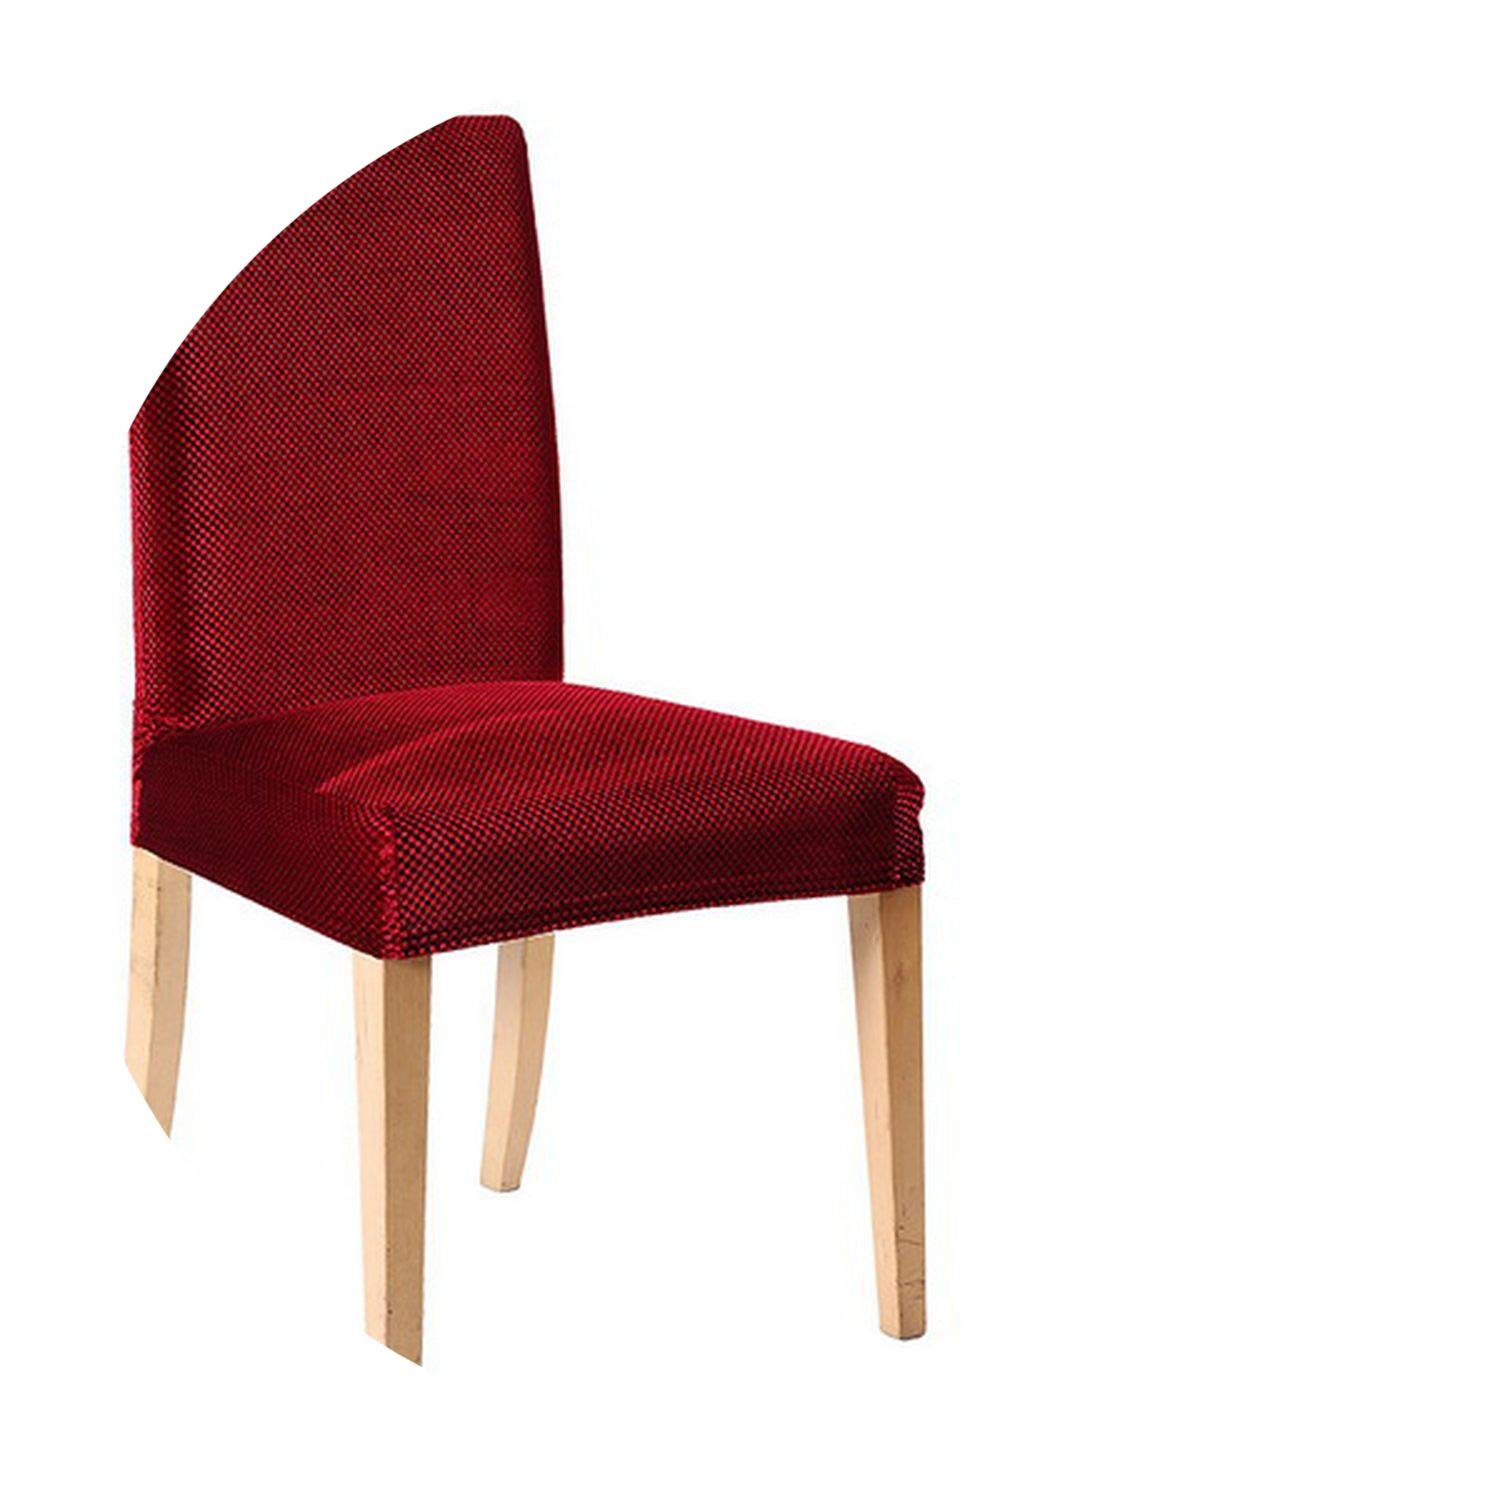 Amazon.com: Red Wine Dining Chair Covers Cover for funda ...